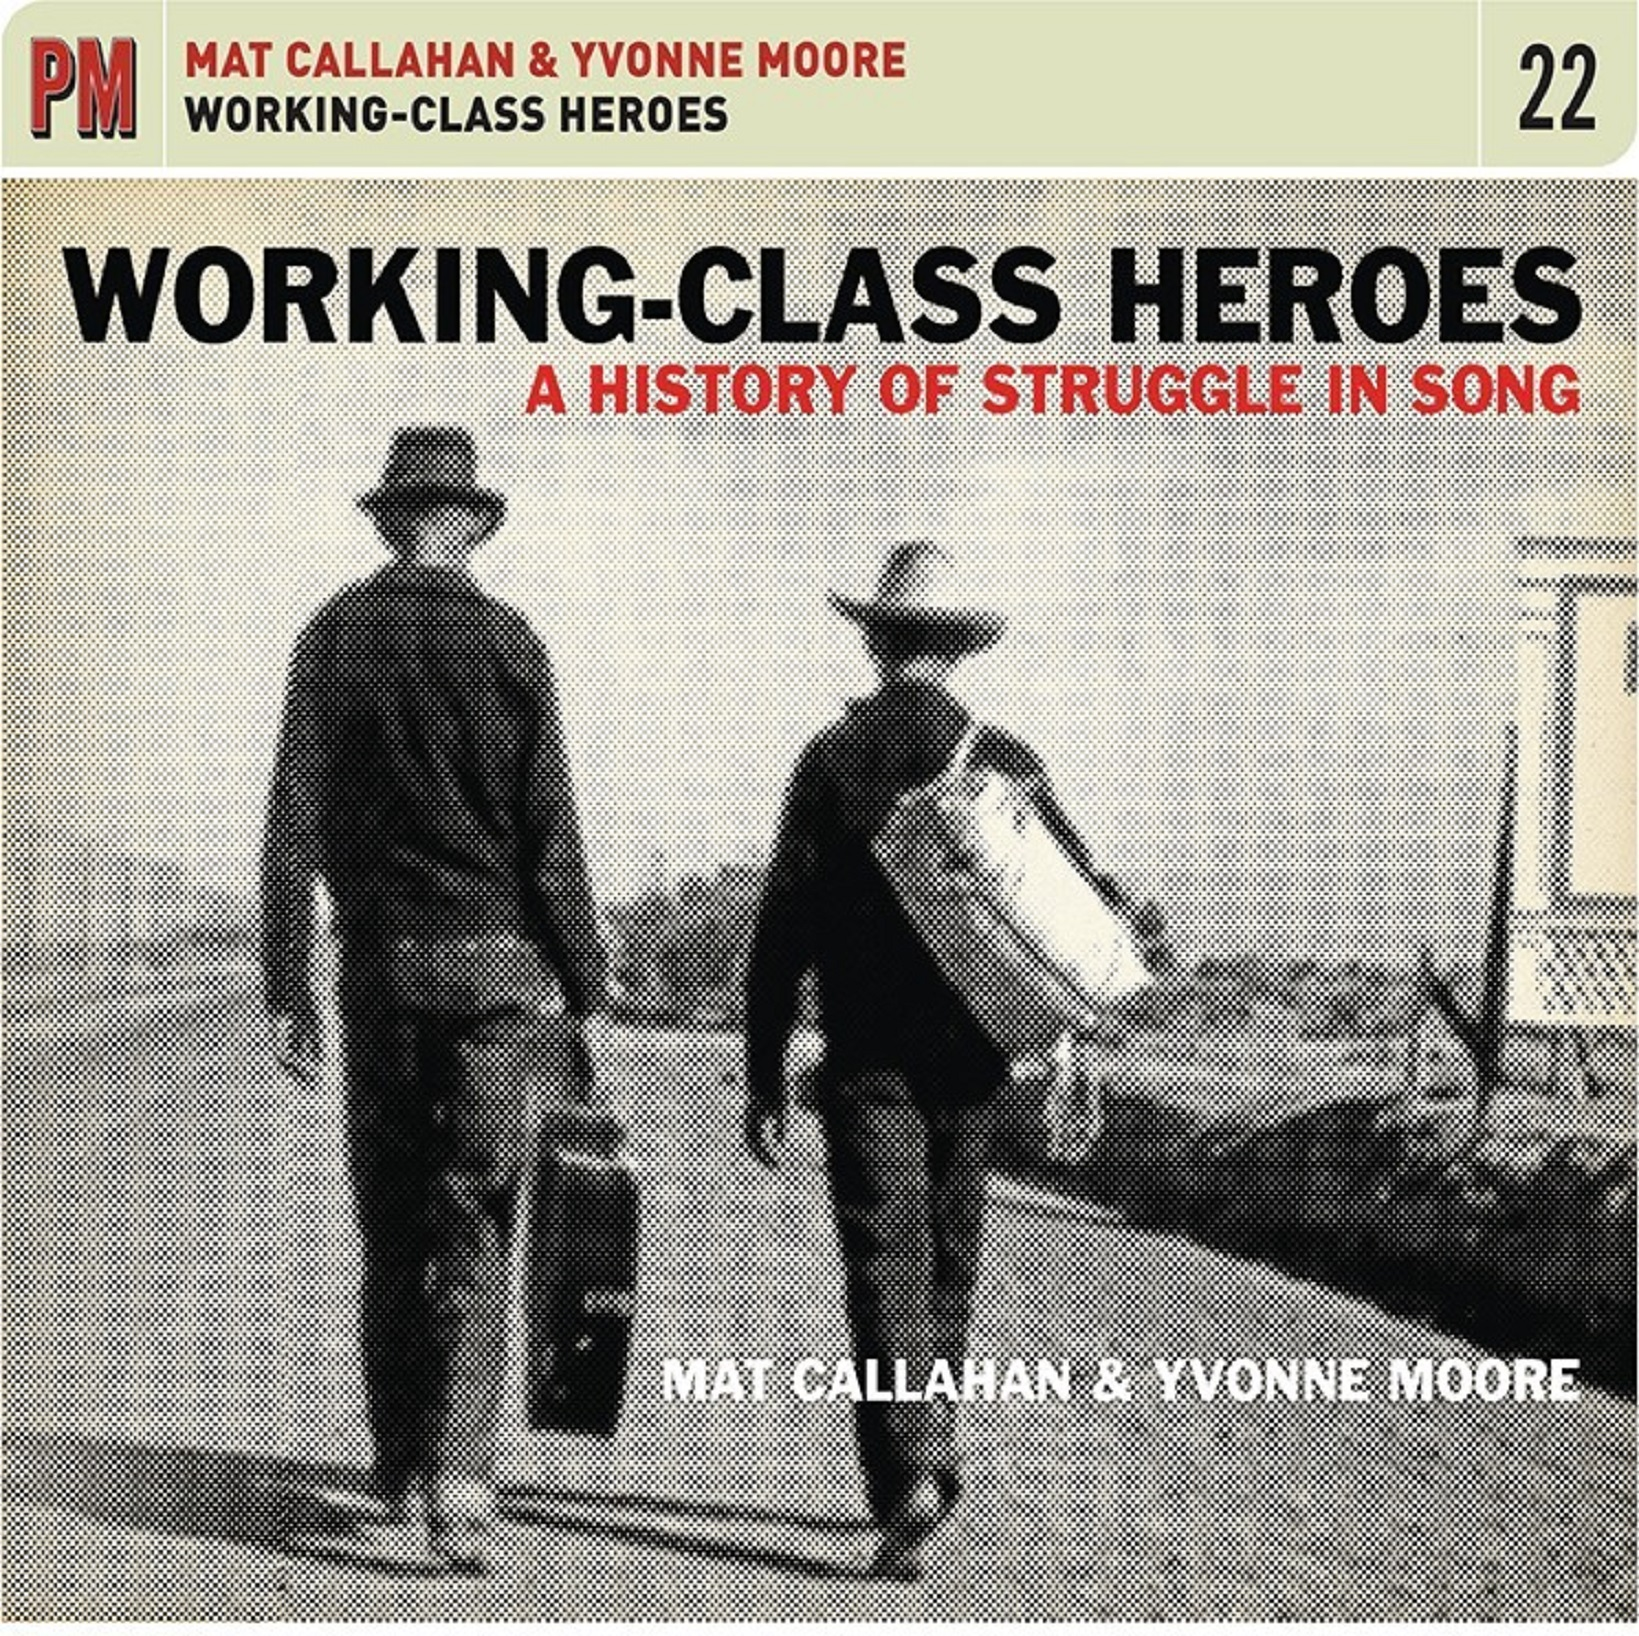 MAT CALLAHAN & YVONNE MOORE - WORKING-CLASS HEROES: A HISTORY OF STRUGGLE IN SONG album artwork